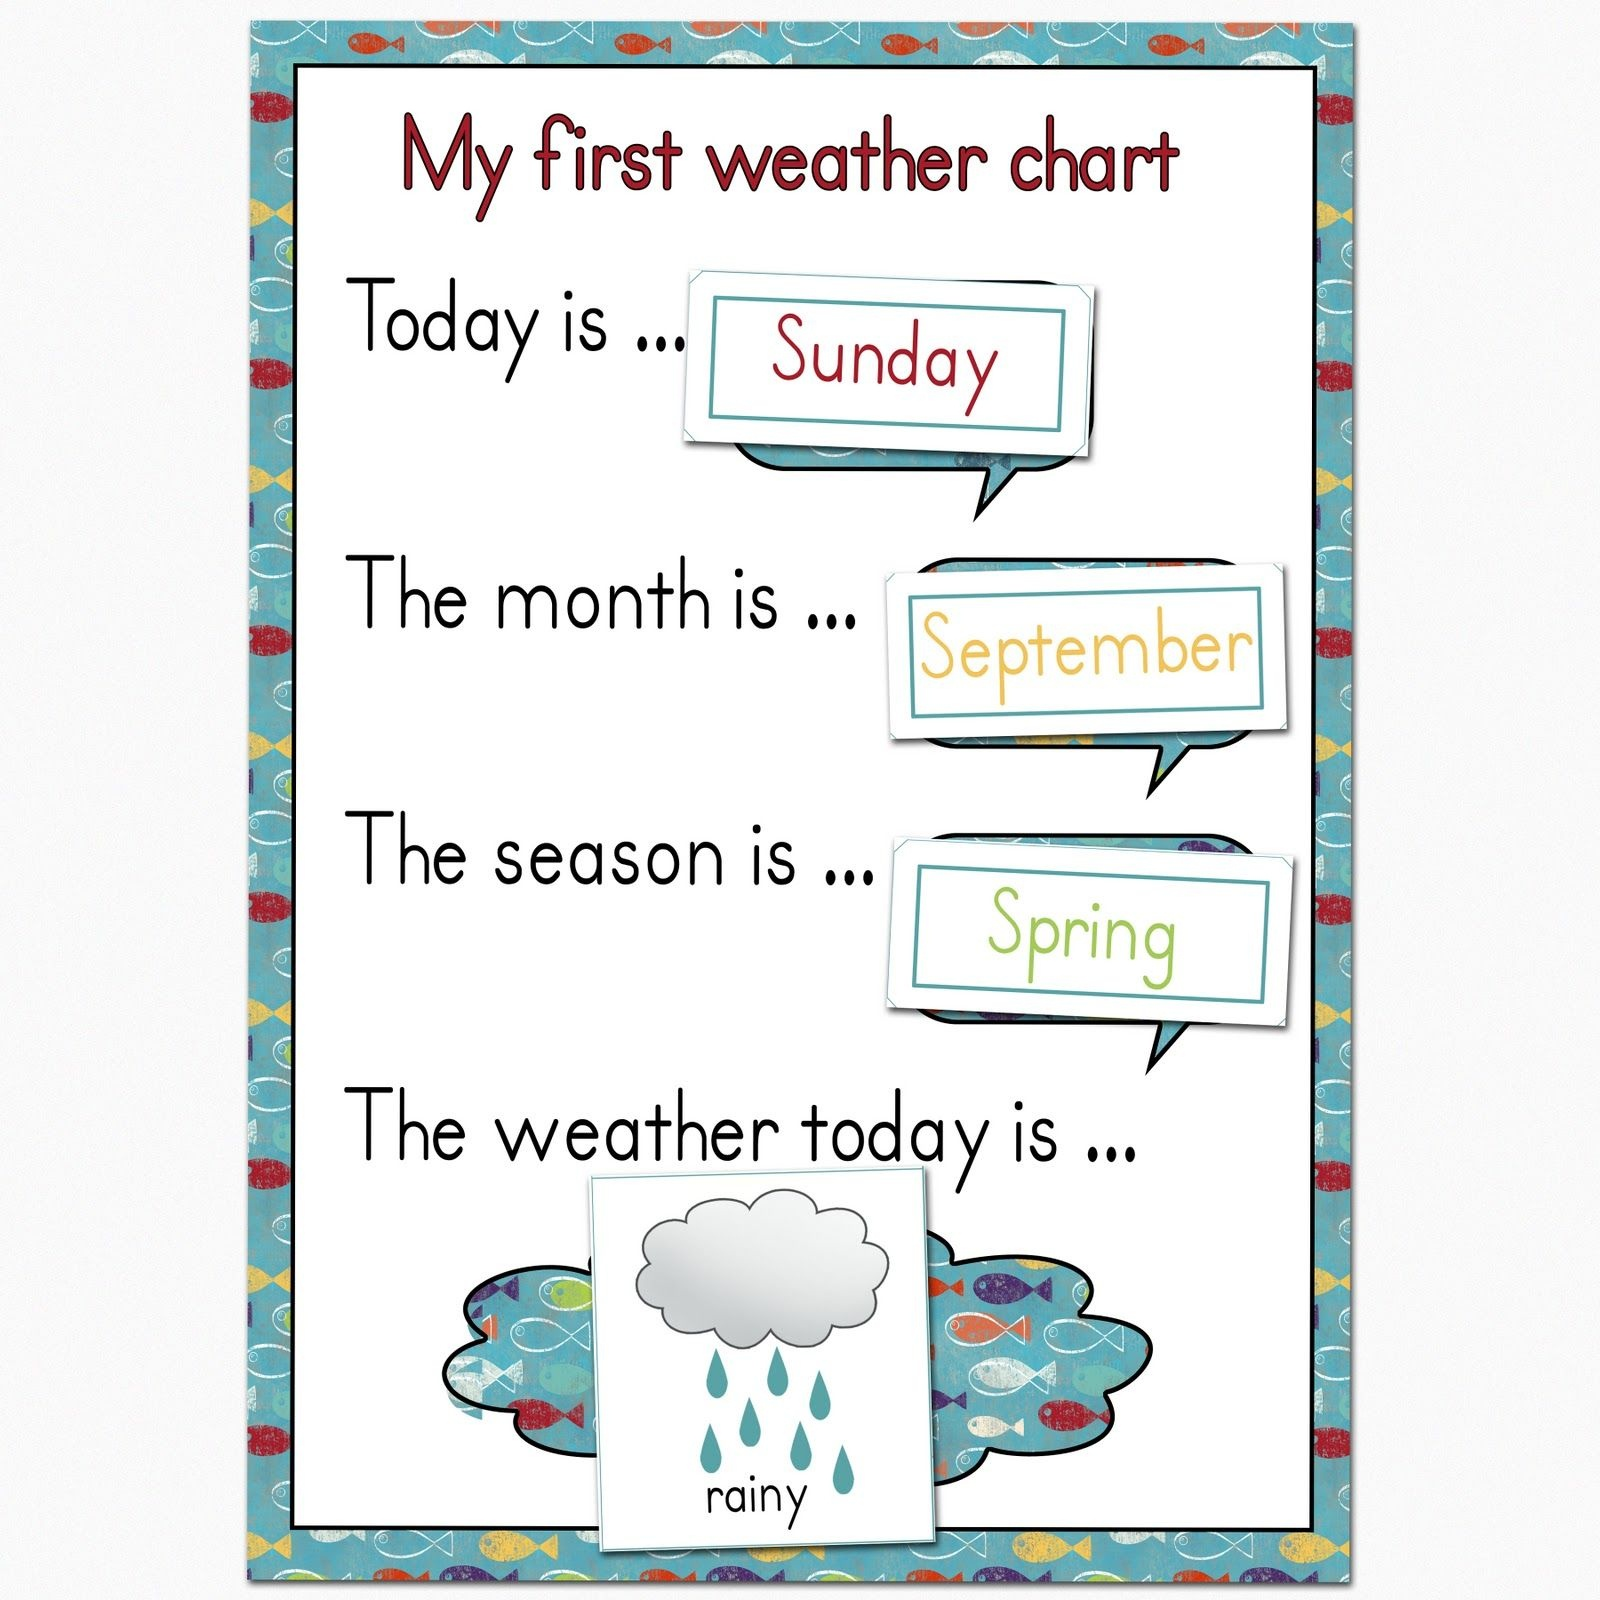 Preschool Weather Chart   Plan To Keep Mine On The Fridge, And Use - Free Printable Weather Chart For Preschool